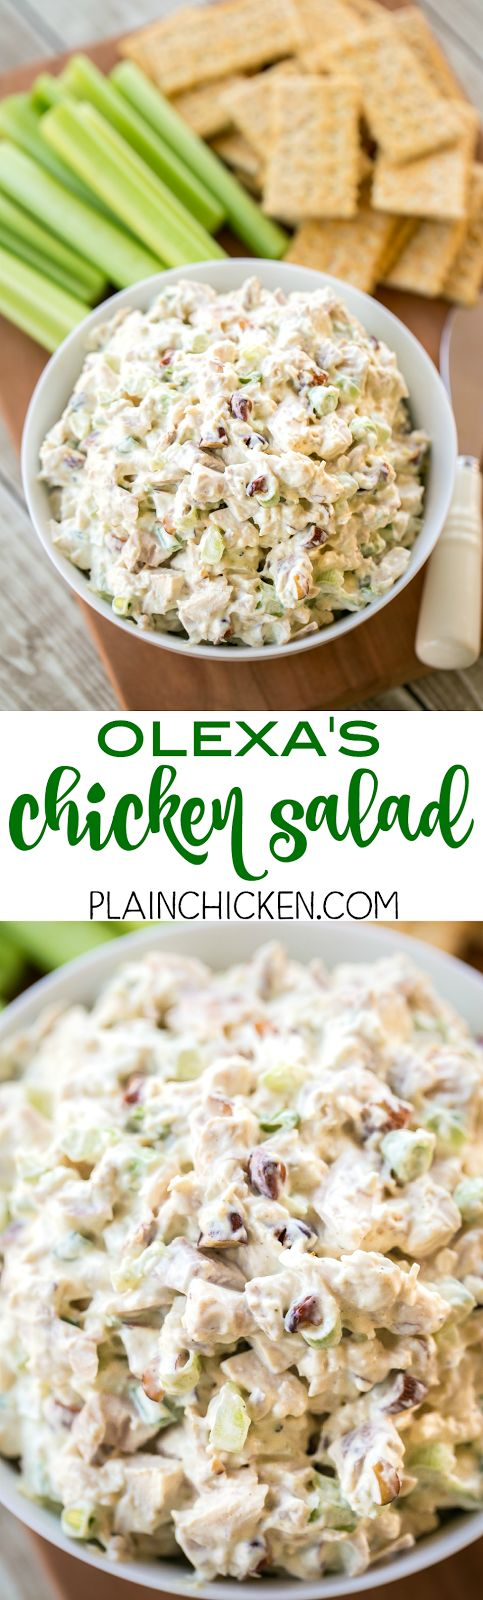 Olexa's Chicken Salad - This is THE BEST chicken salad EVER!! SO good!!! Chicken, mayo, sour cream, celery, curry, salt, pepper, lemon juice, green onions and smoked almonds. Copycat recipe from the Birmingham, AL restaurant. I think this version is better than the original. Keeps for up to 5 days in the fridge.